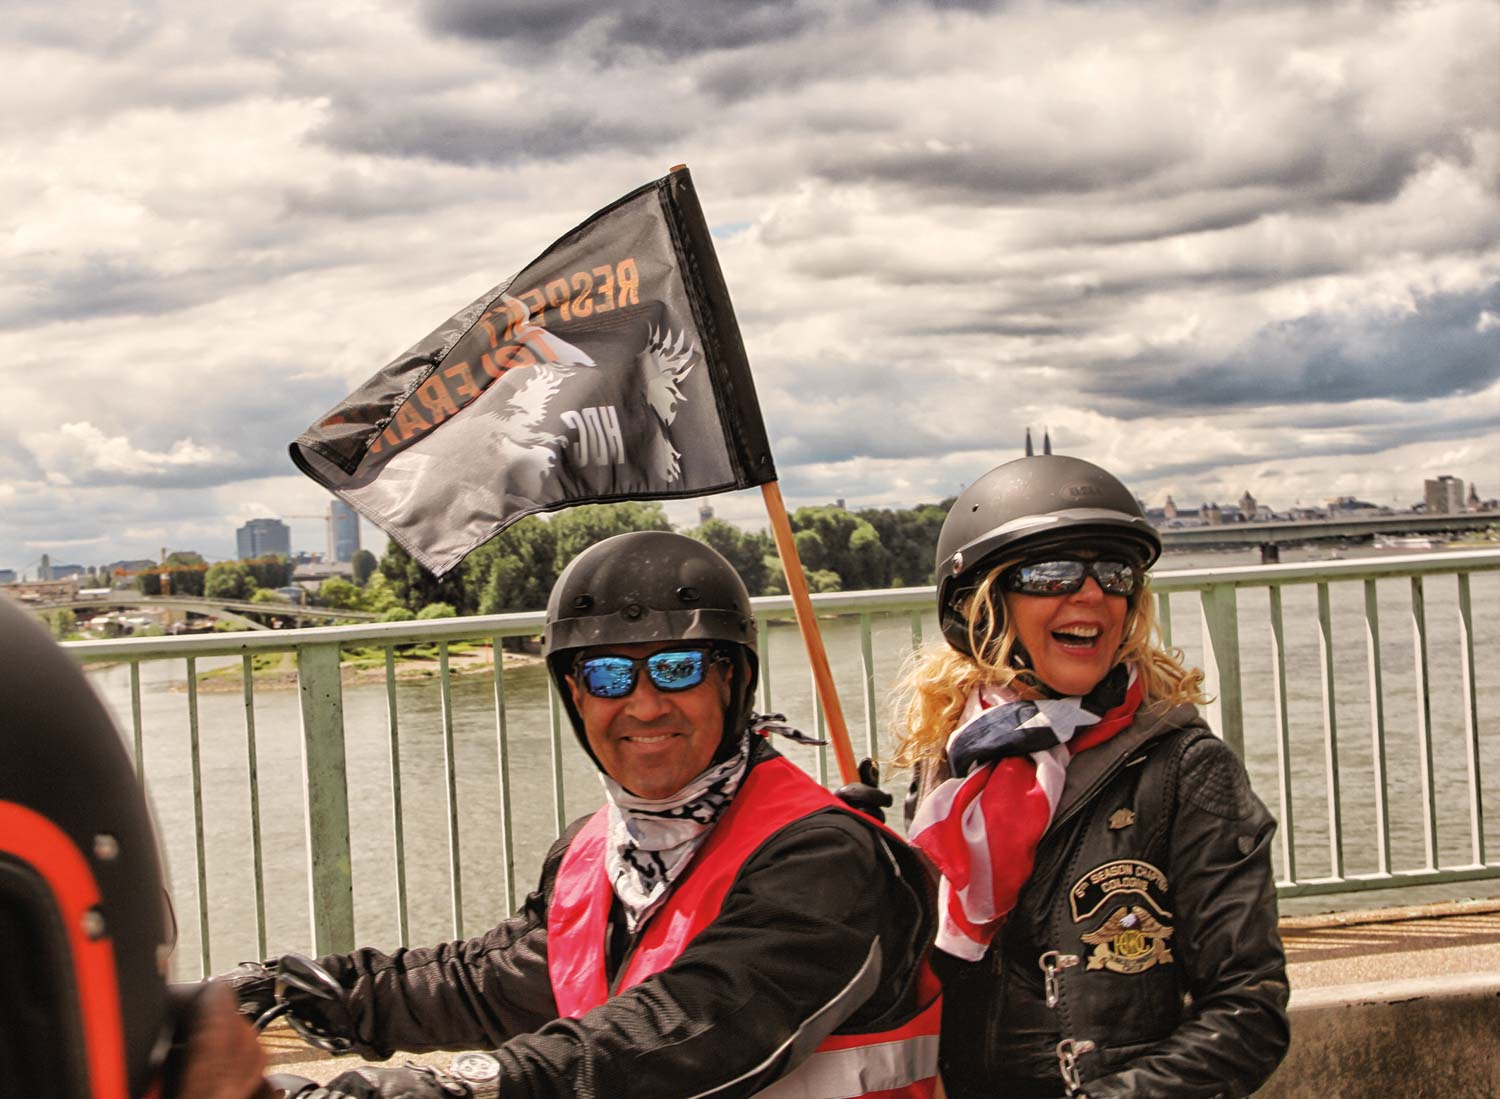 Harley Dome Cologne 2017 Parade